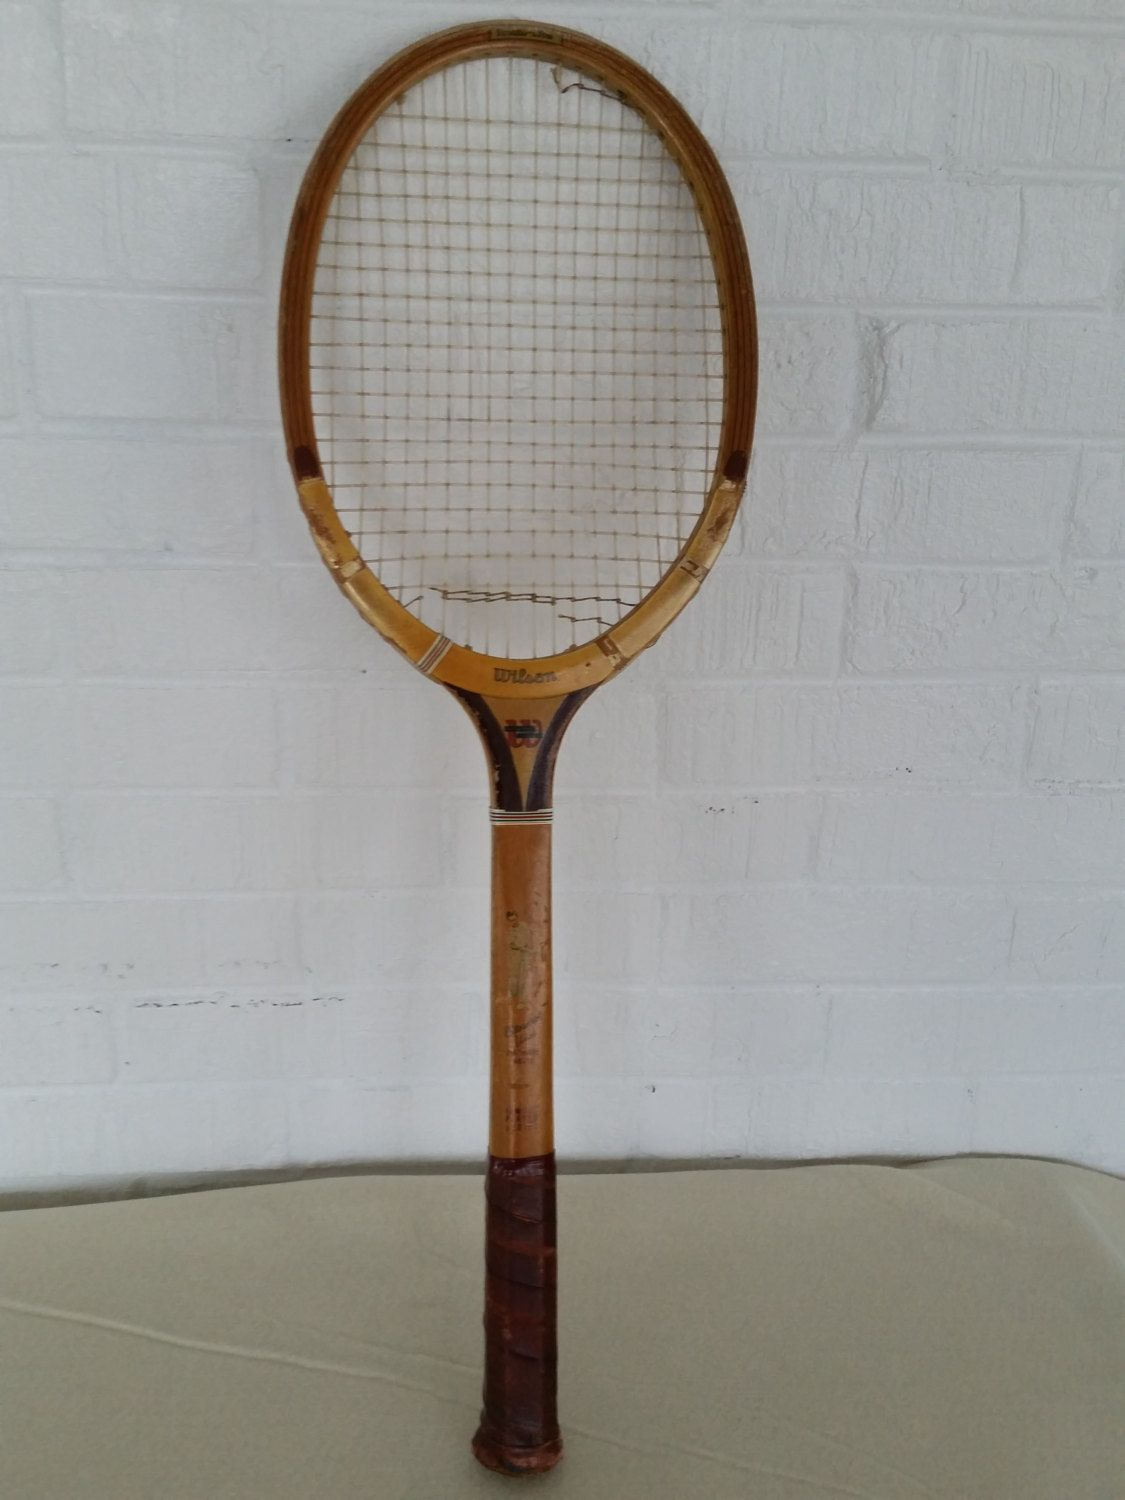 Vintage Tennis Racket Wood Tennis Racquet Wilson Tennis Racket